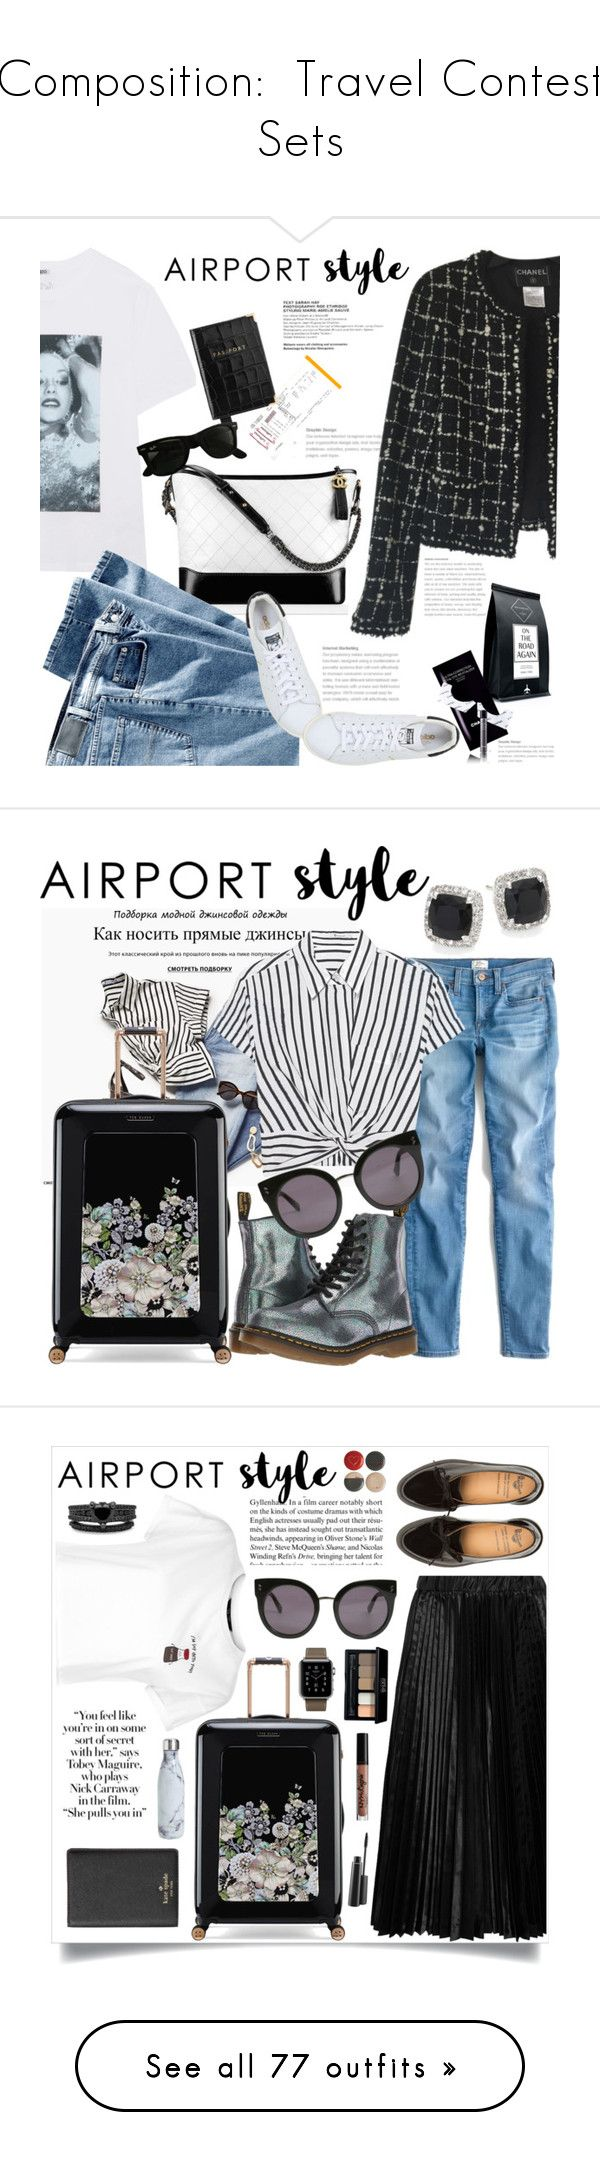 """""""Composition:  Travel Contest Sets"""" by jzanzig ❤ liked on Polyvore featuring Kenzo, Chanel, Spitfire, Aspinal of London, adidas Originals, Ray-Ban, Codage, travel, vacation and HowToWear"""